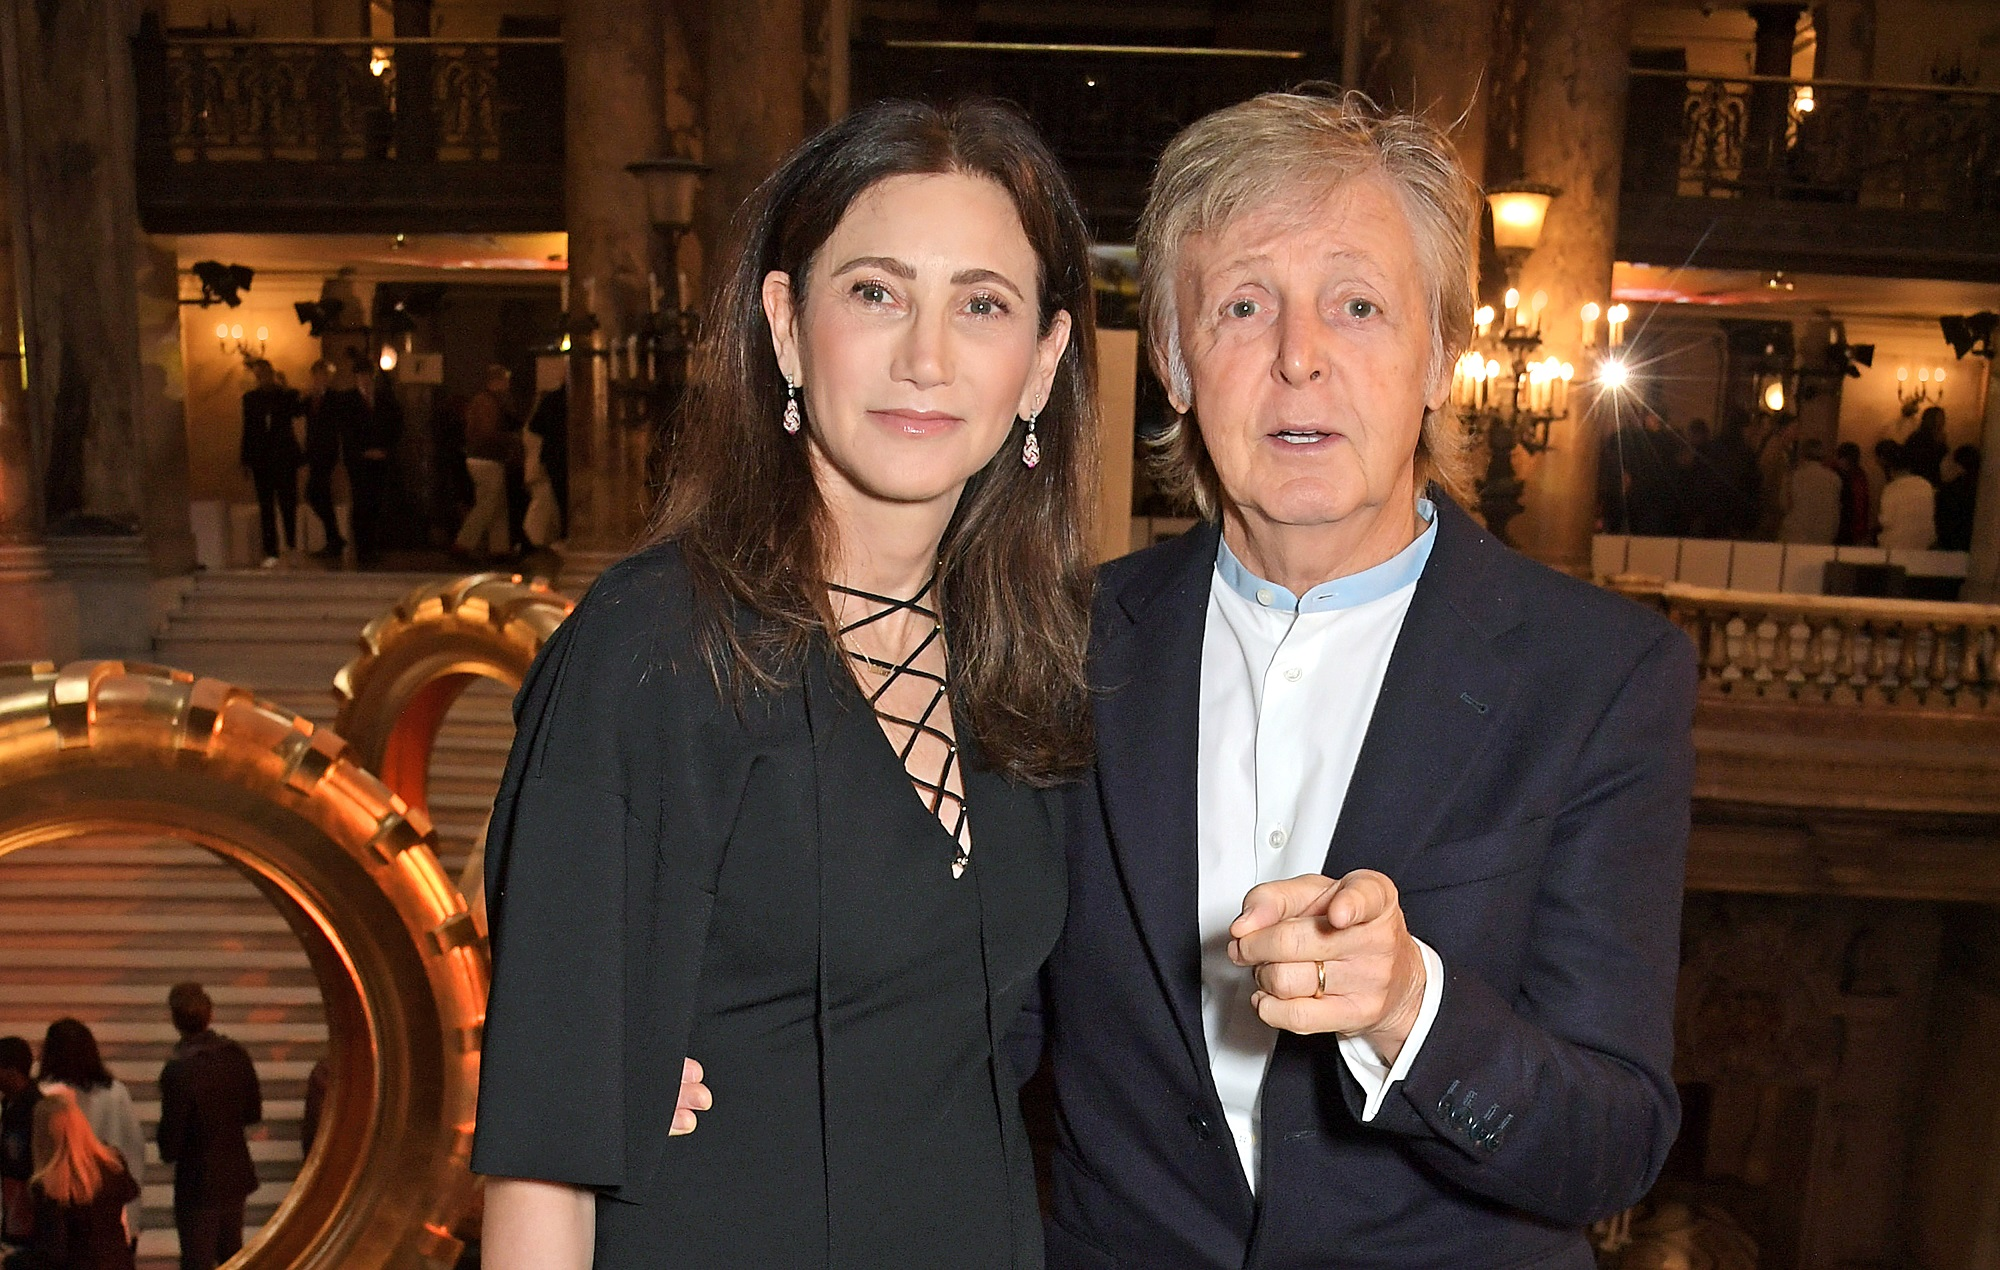 """Paul McCartney secretly snuck into a cinema to watch 'Yesterday' and """"loved it"""""""